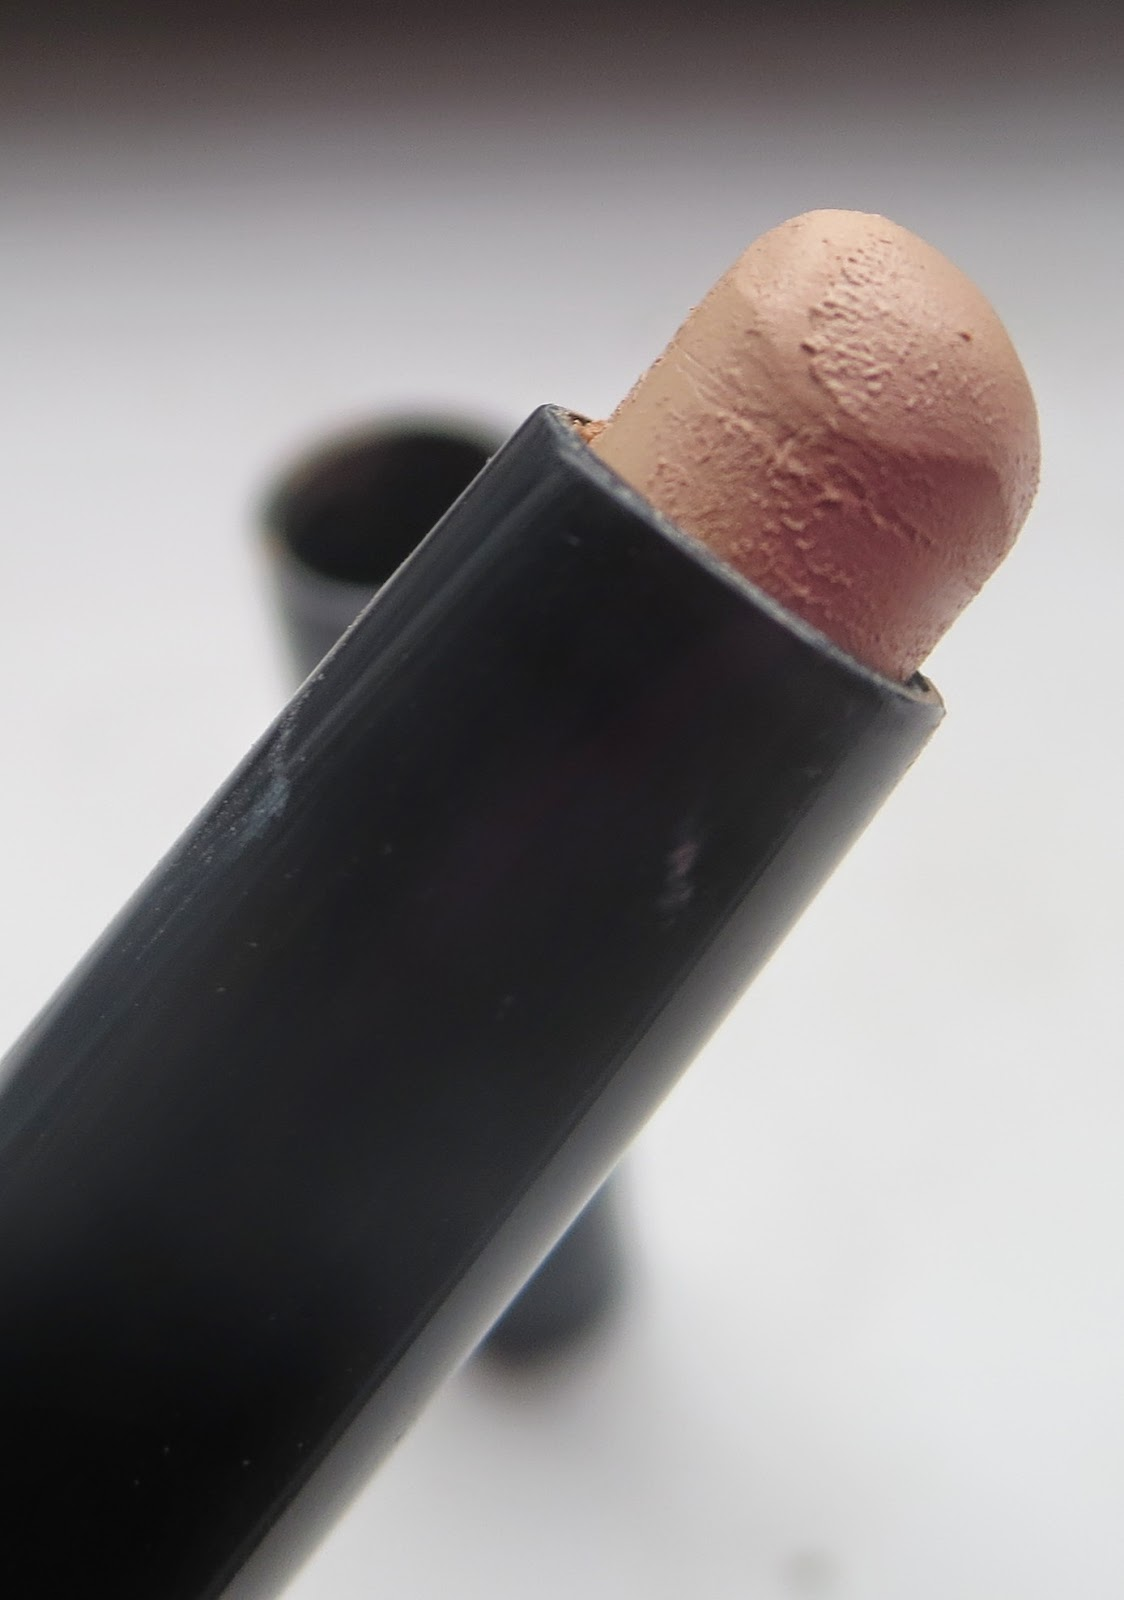 a picture of Annabelle Cosmetics Skin Perfect Concealer